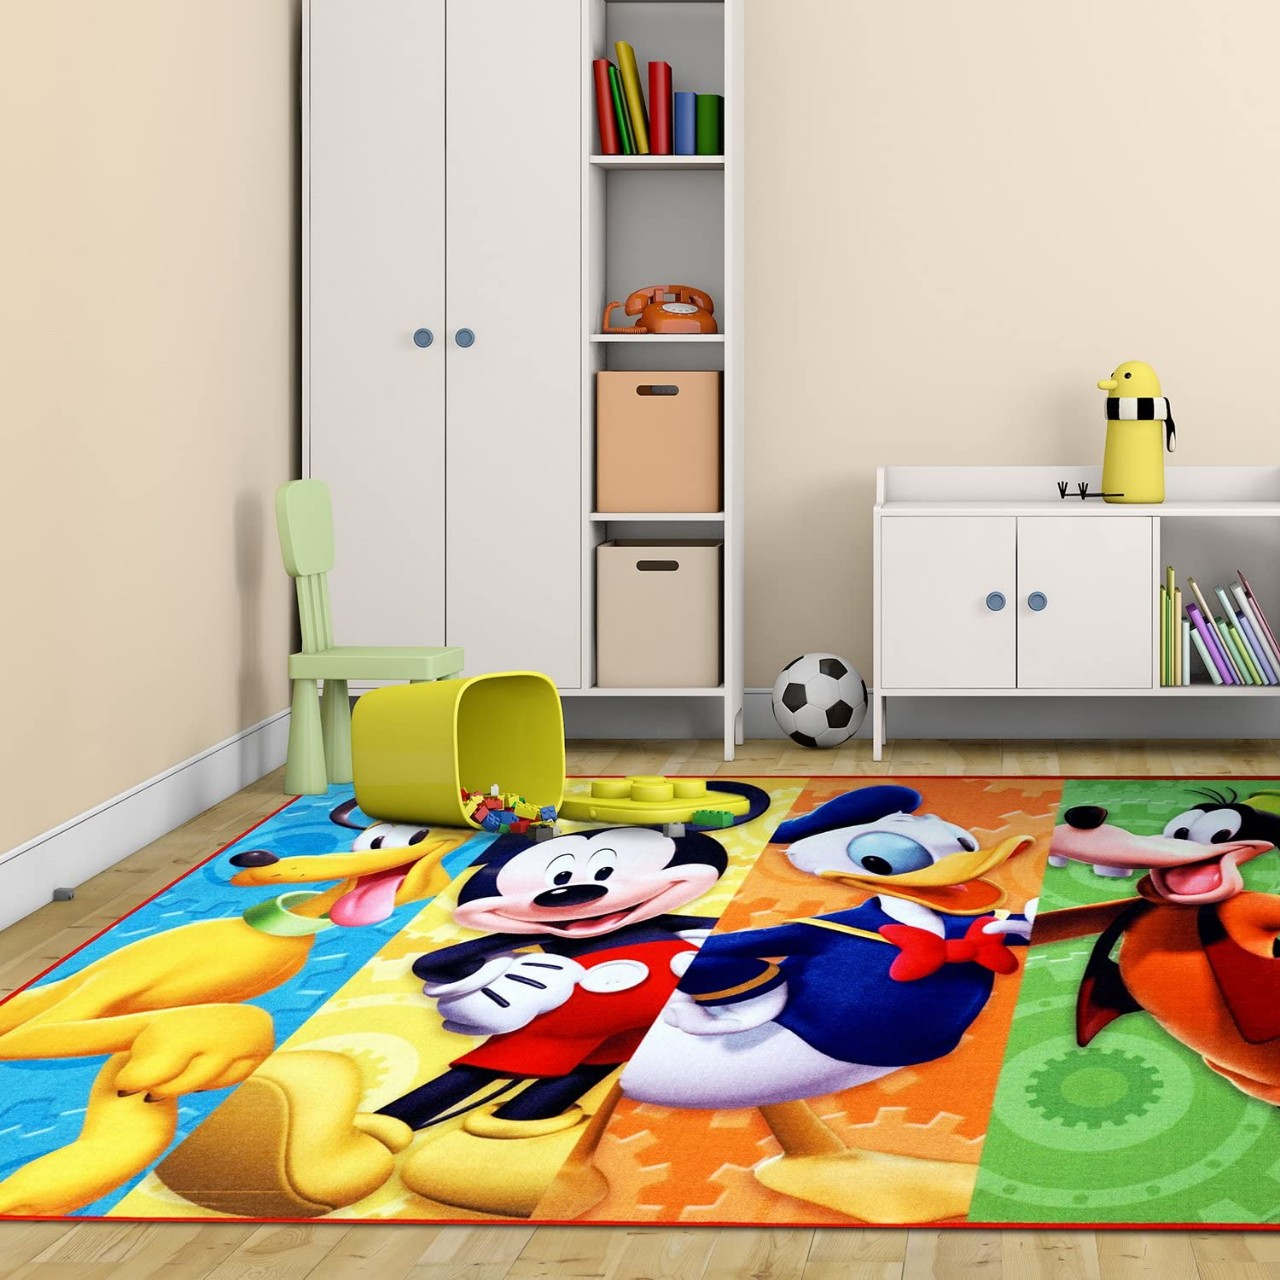 Disney Mickey Mouse Clubhouse Rug HD Digital MMCH Kids Room Decor Bedding Area Rugs 5x7, X Large